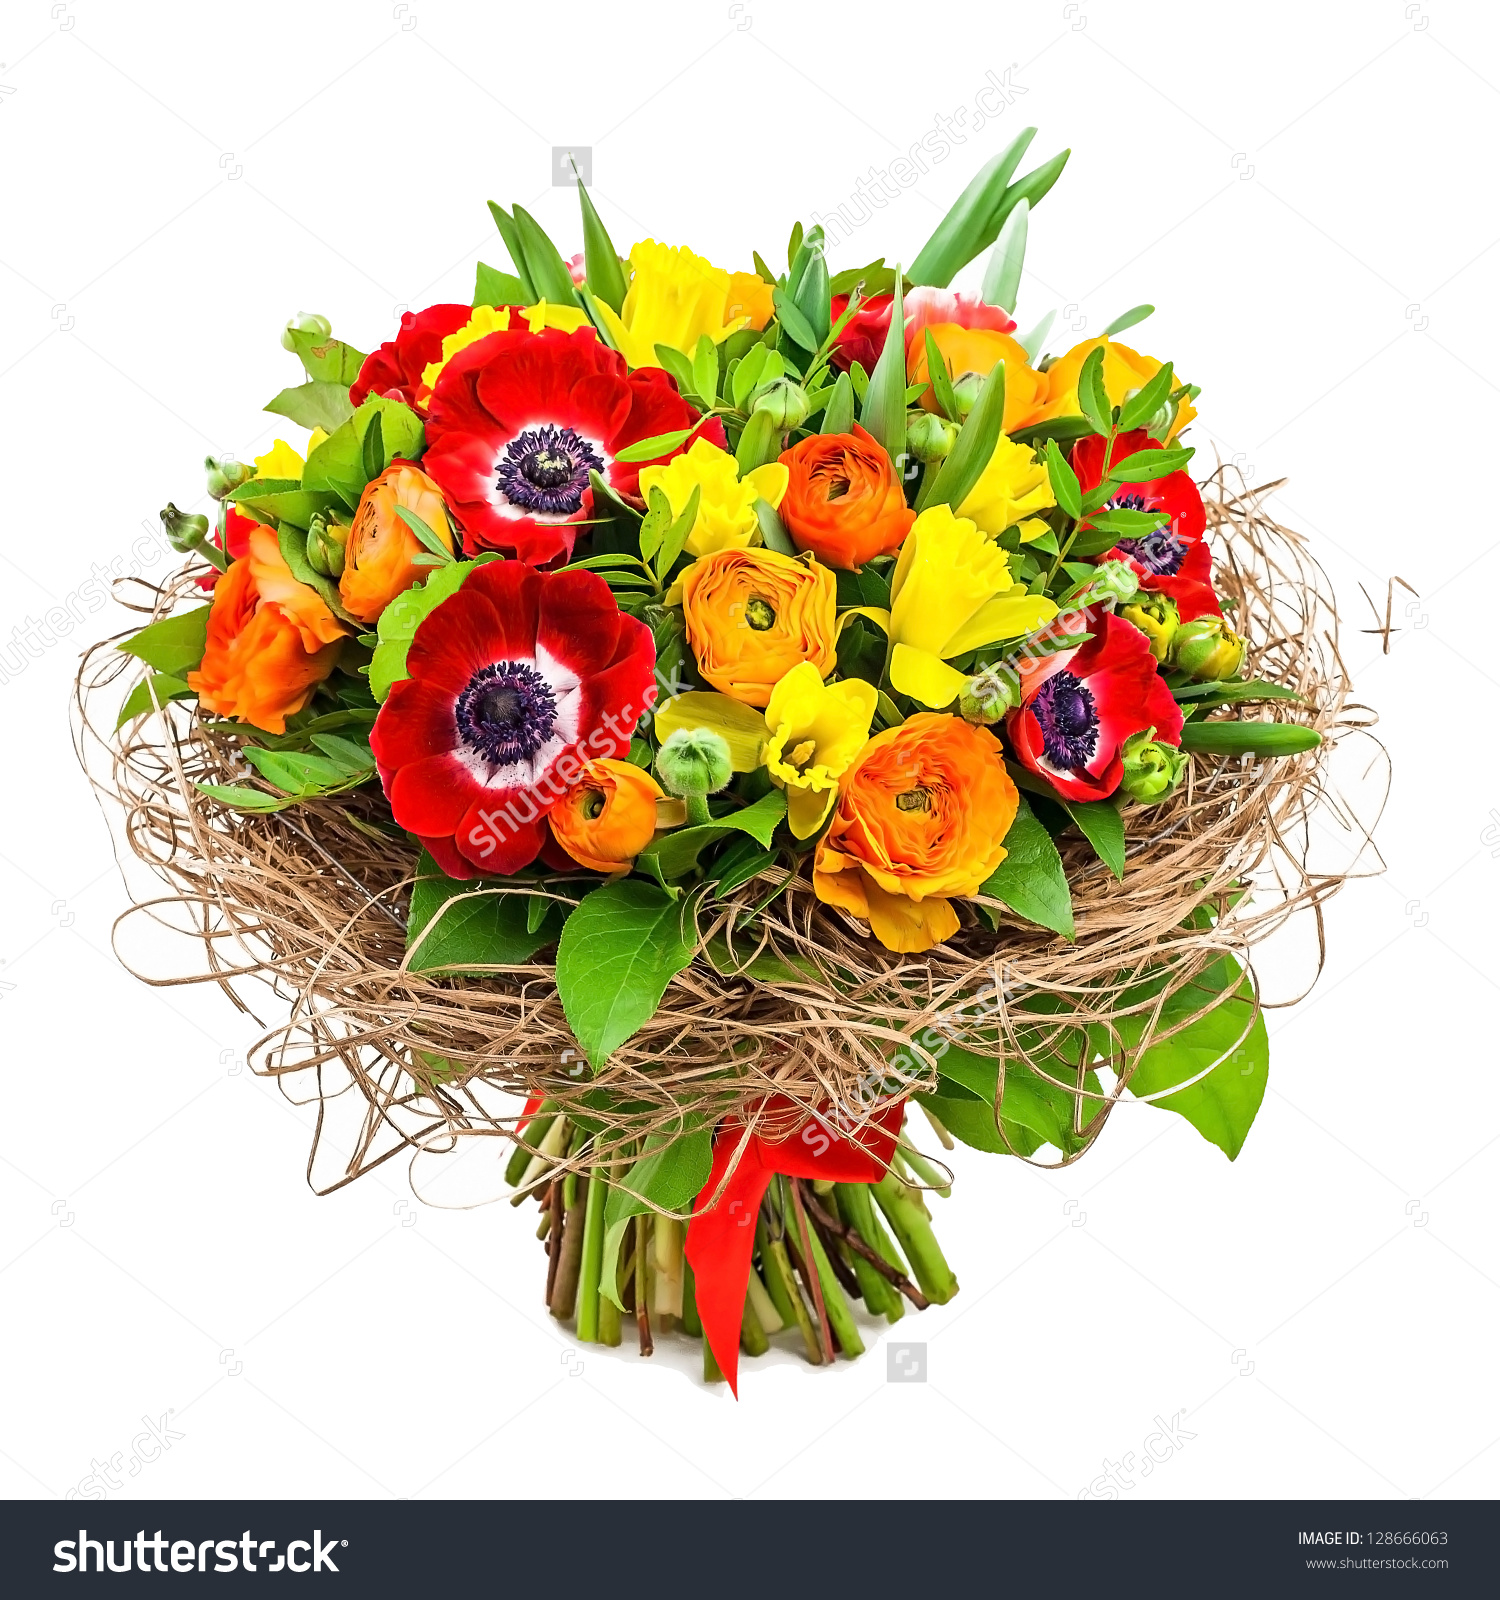 Bouquet Flowers Vase Stock Photo 128666063 - Shutterstock